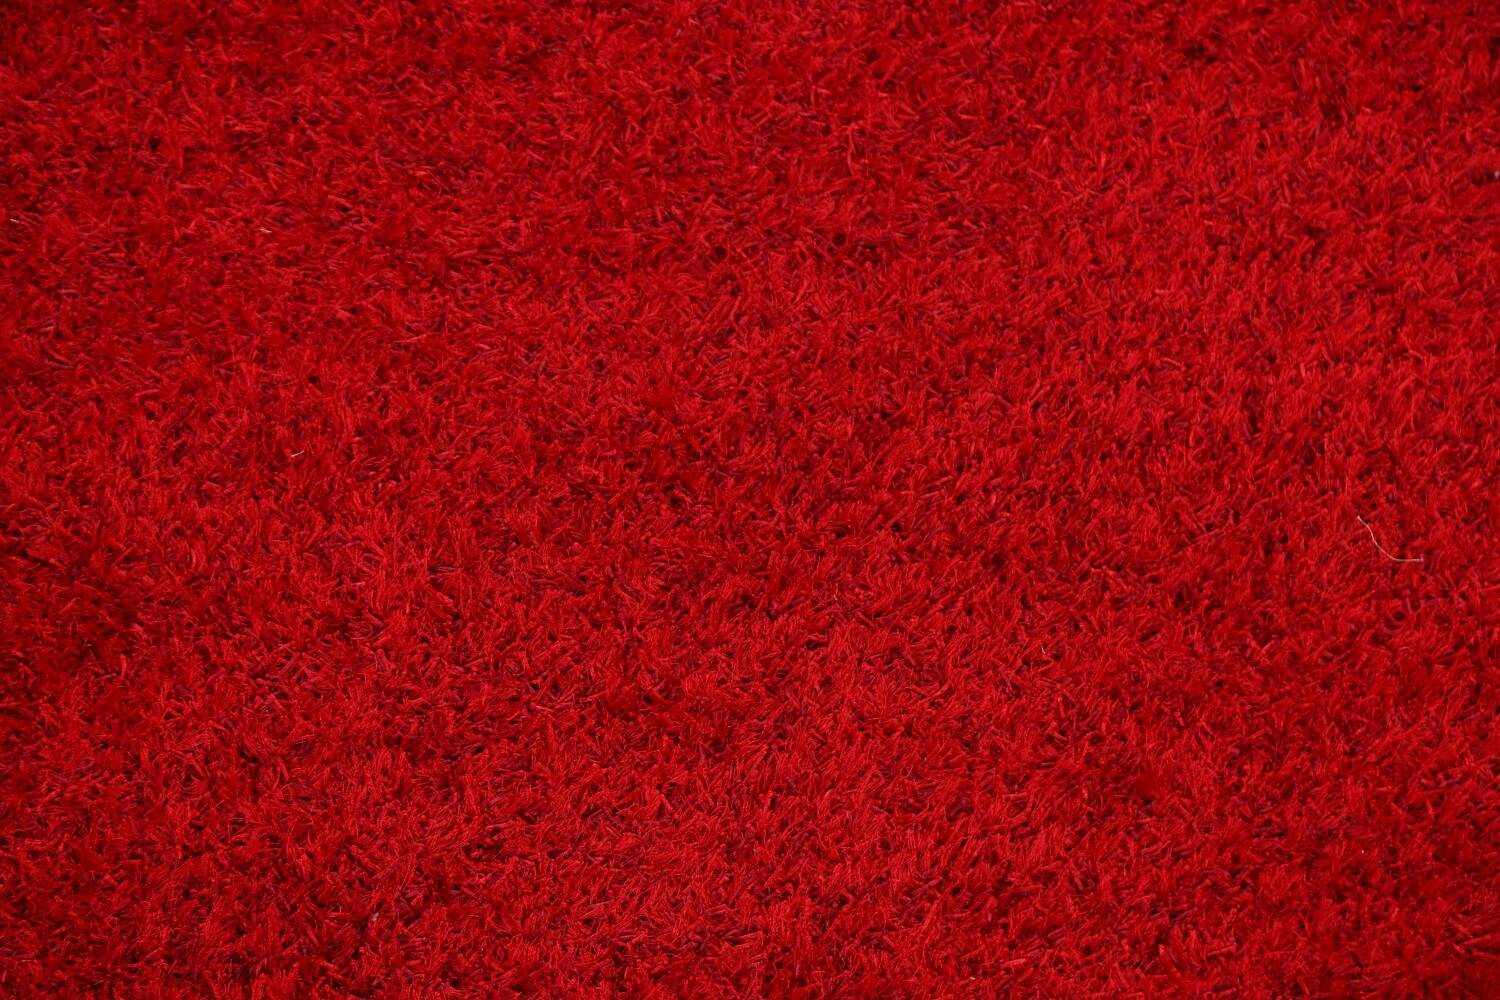 Red Plush Shaggy Area Rug 5x7 image 4